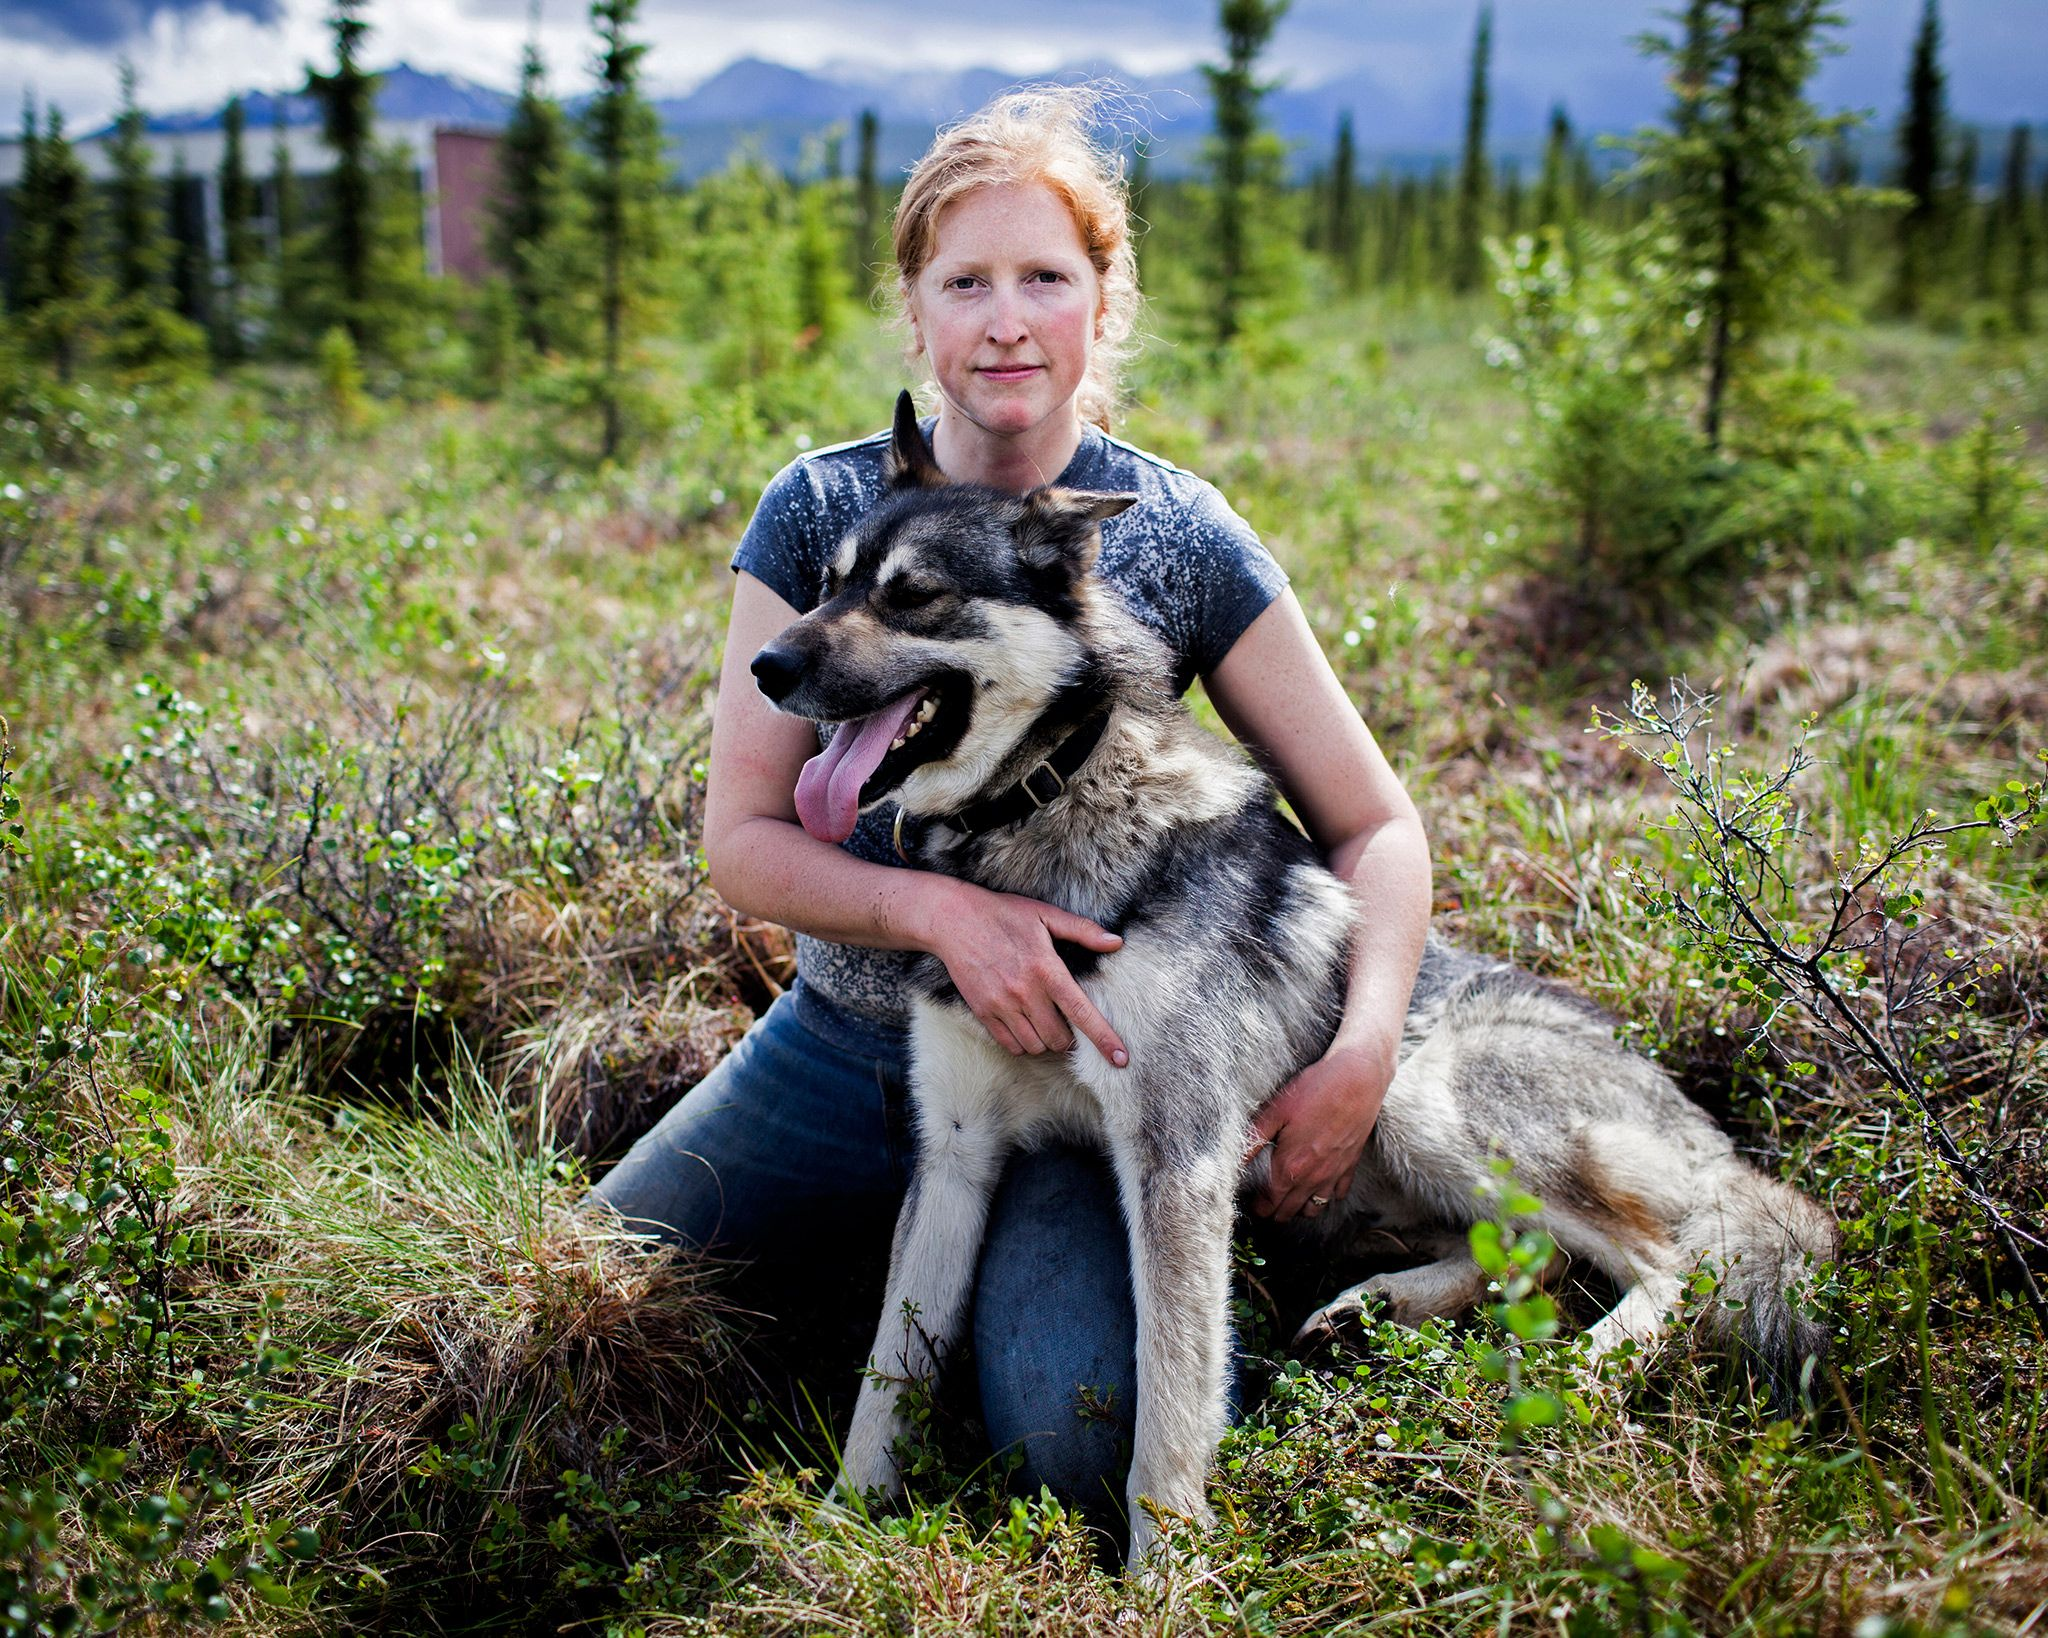 Ep. 505: Dog Sledding and Life in Alaska - Iditarod Racer, Kristin ...